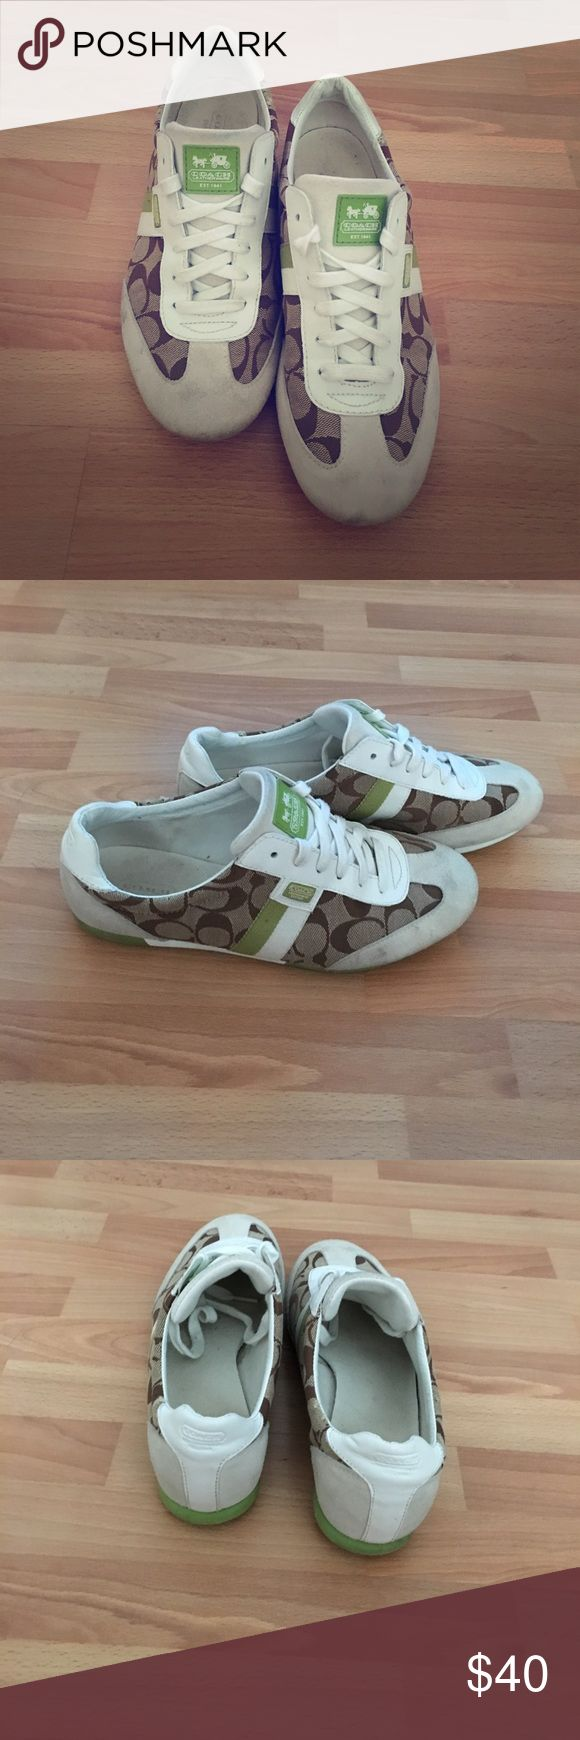 Coach Tennis Shoes Gently used coach tennis shoes. Small marks on Suede in front but still look great and tons of love left in them! Coach Shoes Sneakers